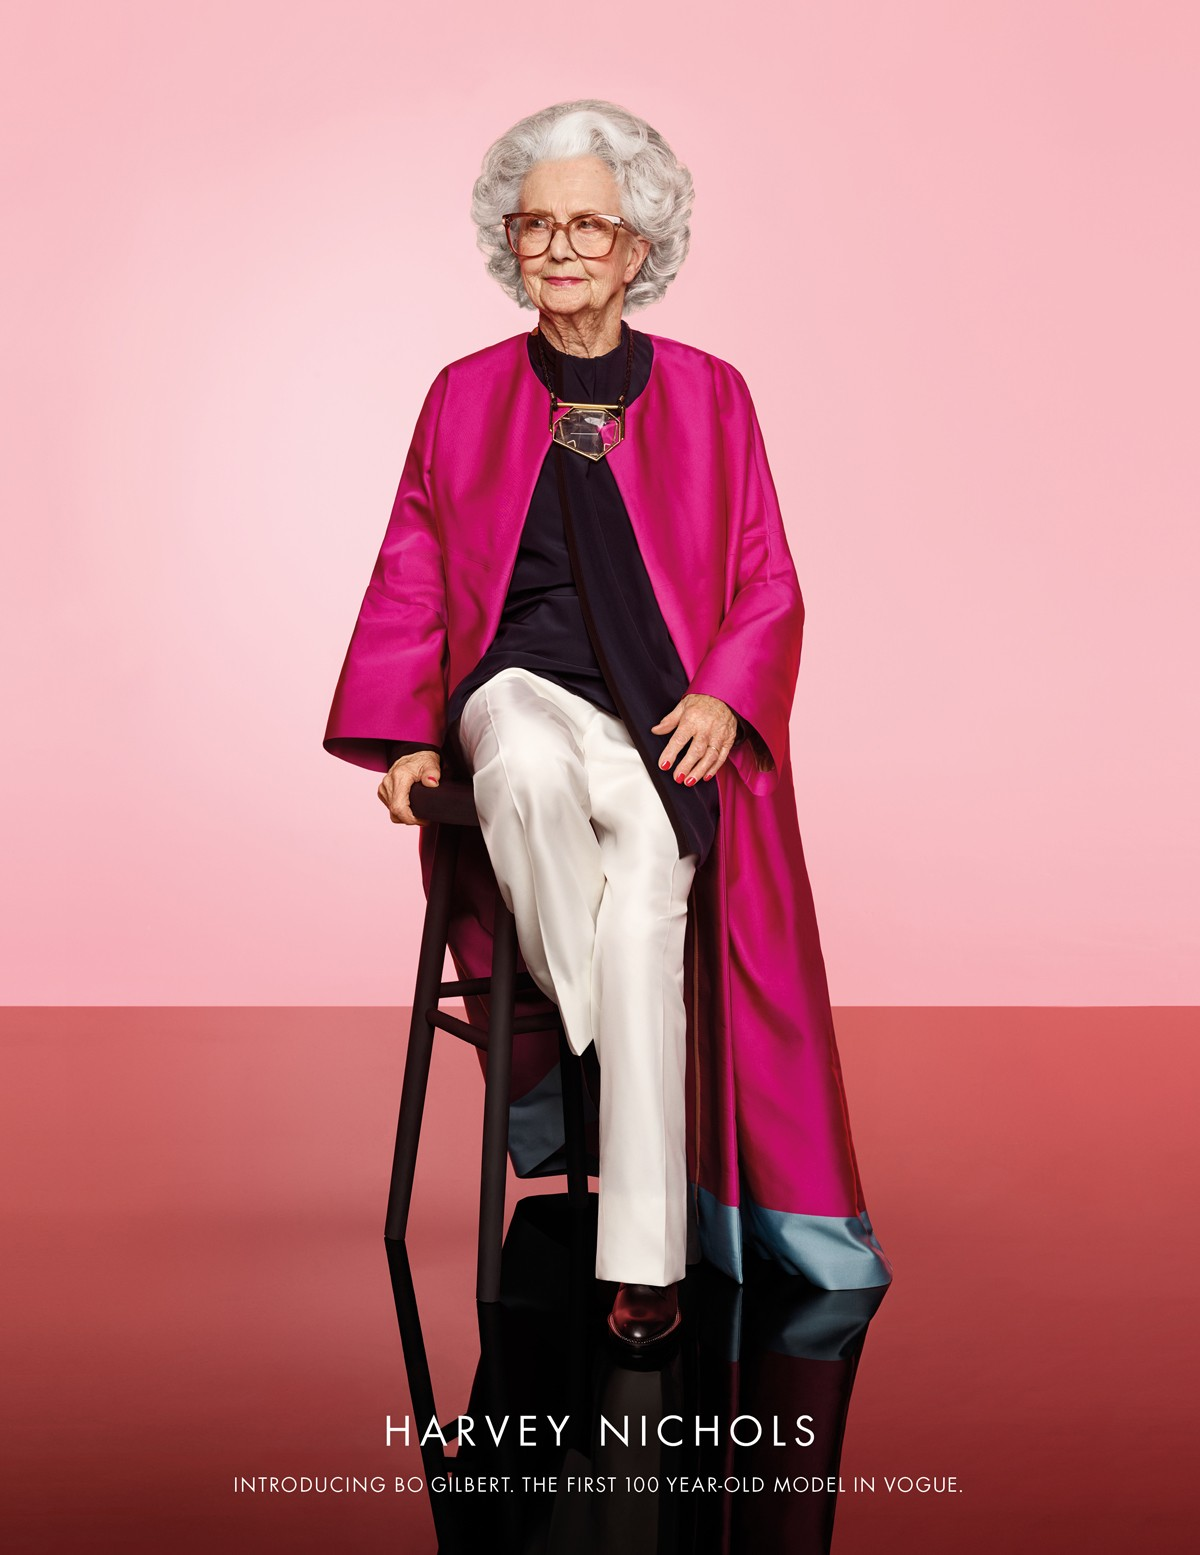 Harvey Nichols features 100 year-old model in special ad for Vogue